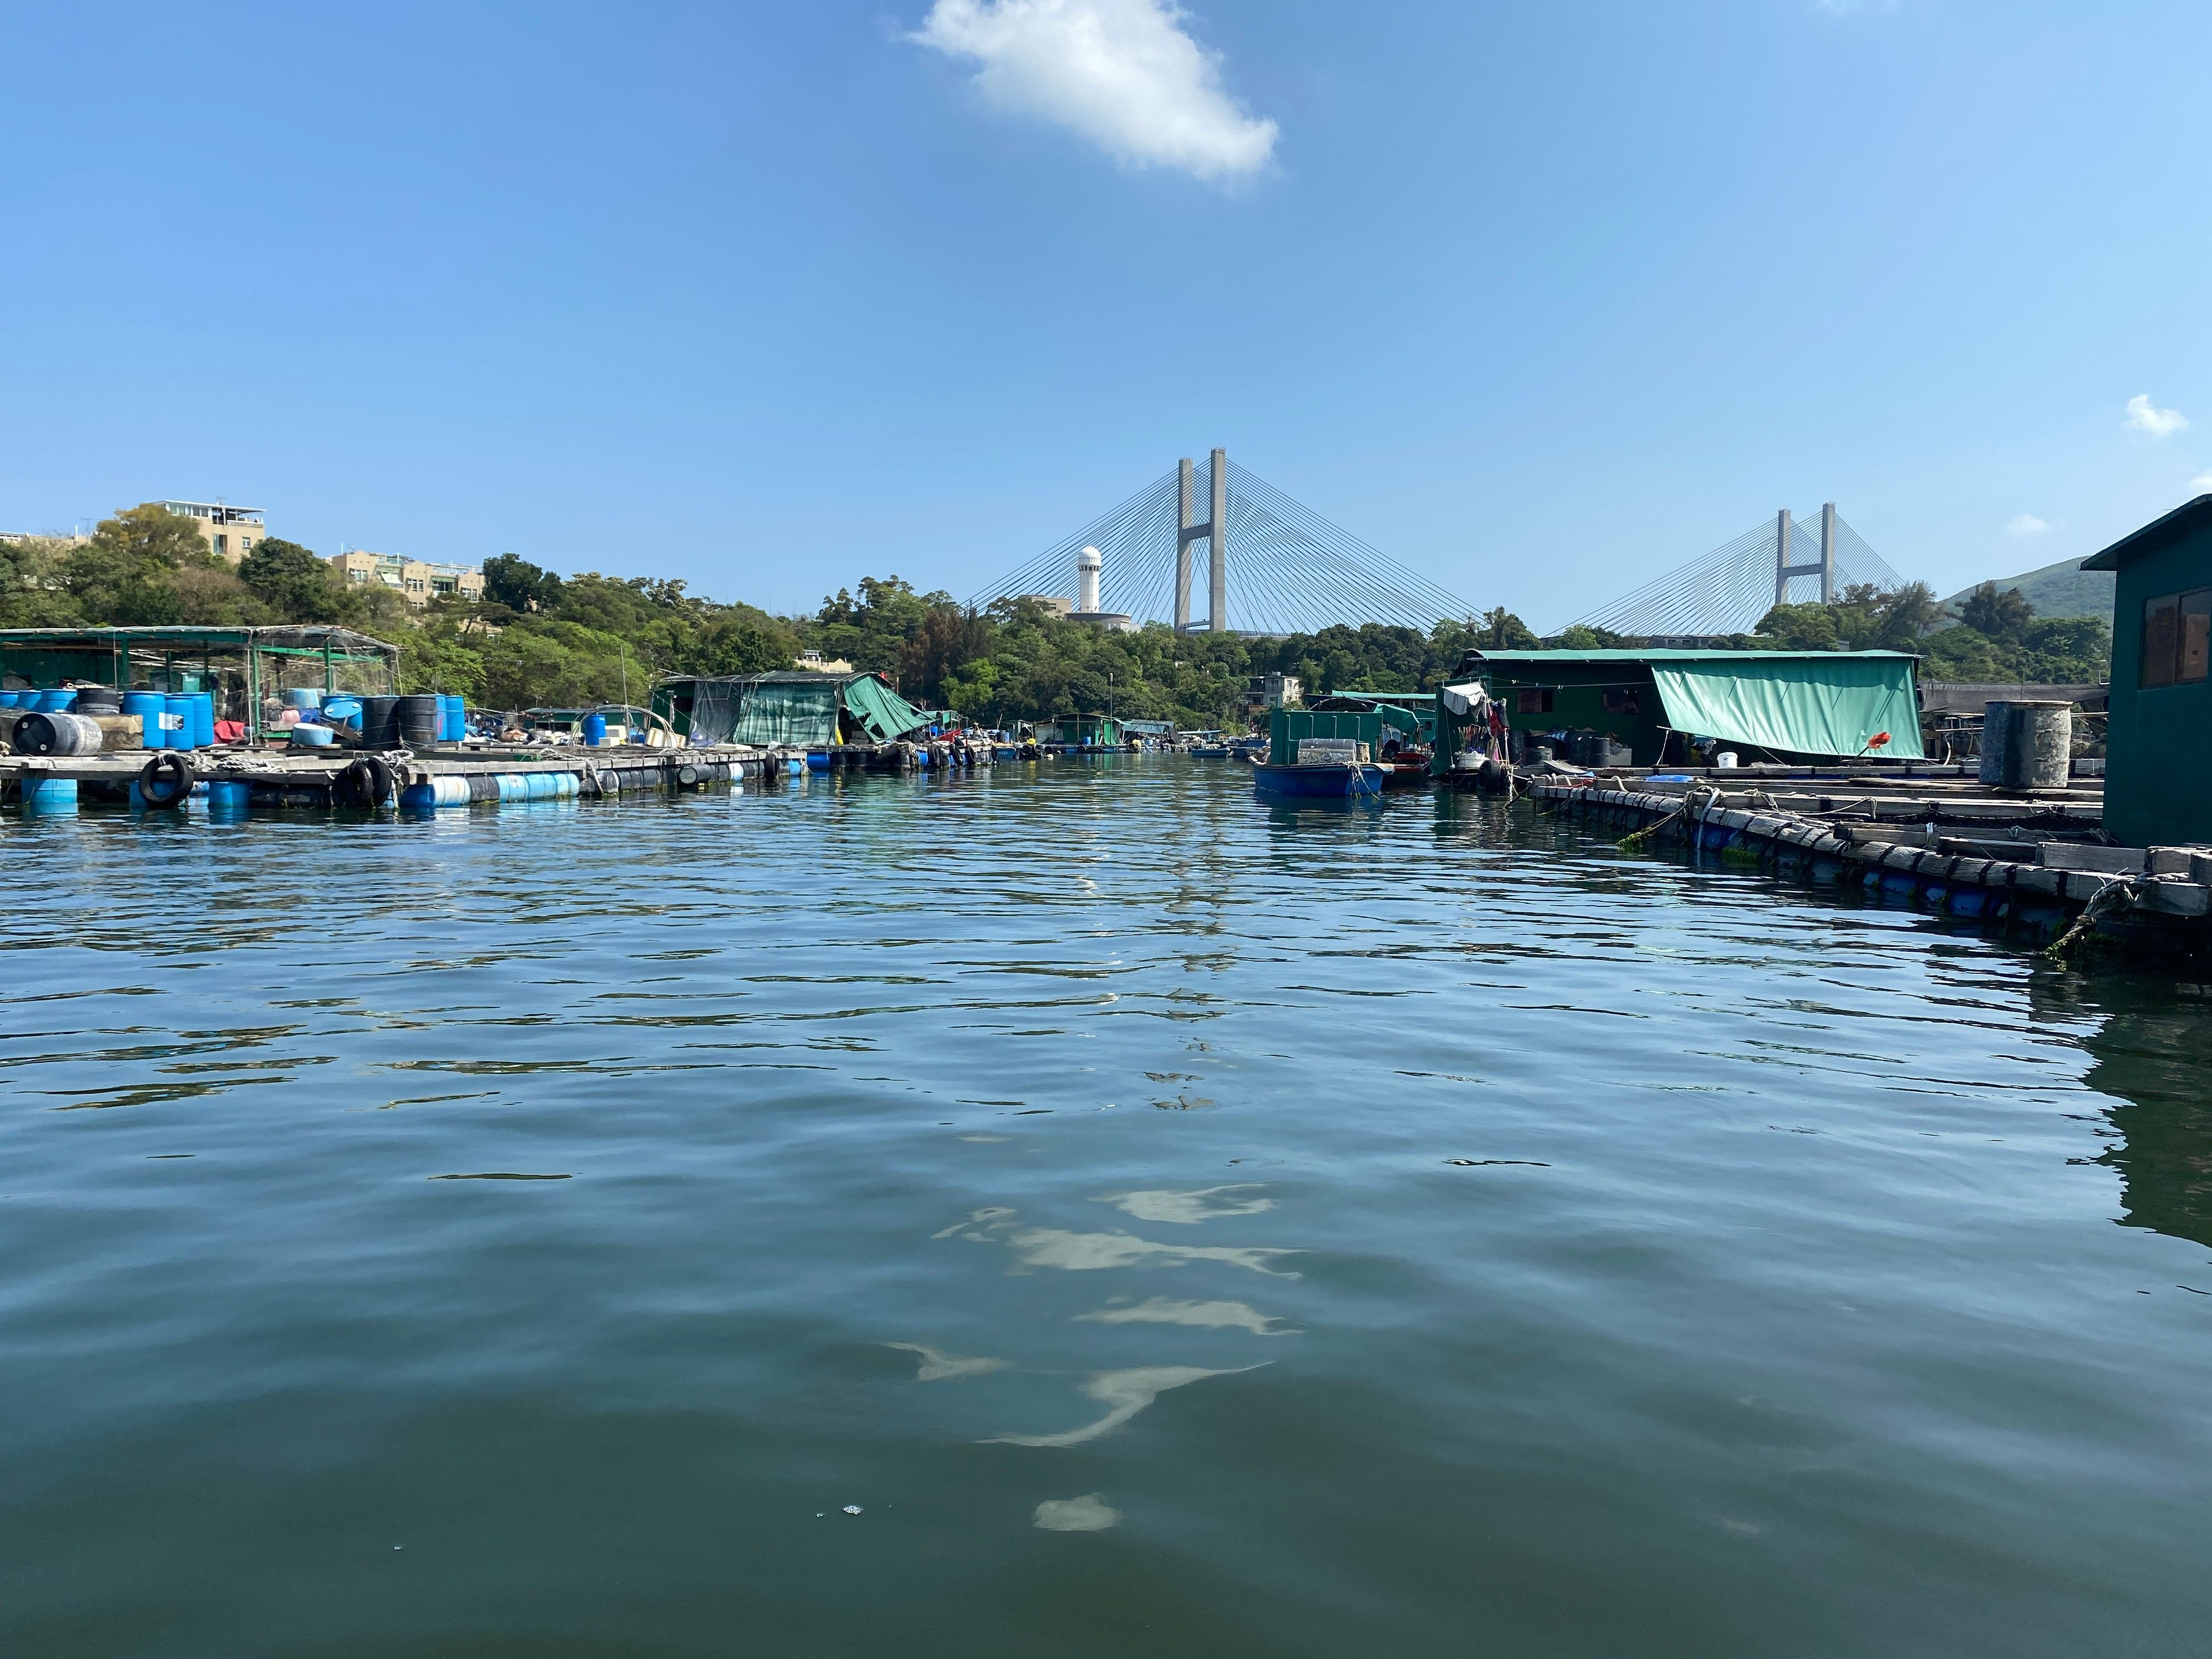 Mini-expedition In Ma Wan/park Island, Visiting The Marine Fish Farms